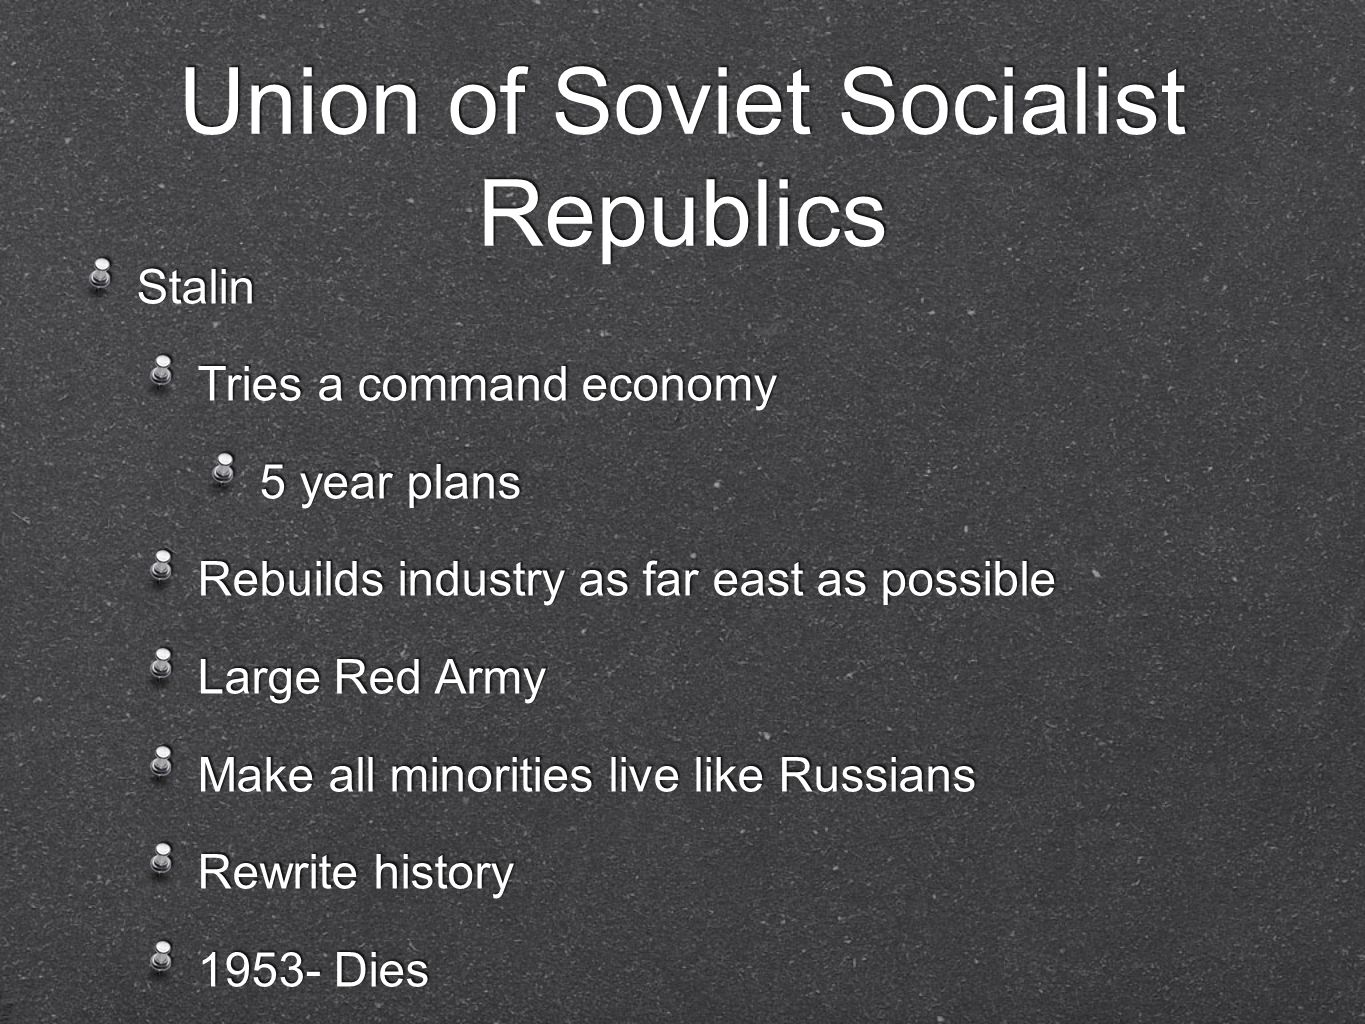 Union of Soviet Socialist Republics 1953- Kruschev, Ministry of Agriculture Comes to power with promise that he will not be another Stalin With Eisenhower, enters into detente with the West Fails Berlin Wall U-2 Incident and Gary Powers Bay of Pigs 1953- Kruschev, Ministry of Agriculture Comes to power with promise that he will not be another Stalin With Eisenhower, enters into detente with the West Fails Berlin Wall U-2 Incident and Gary Powers Bay of Pigs